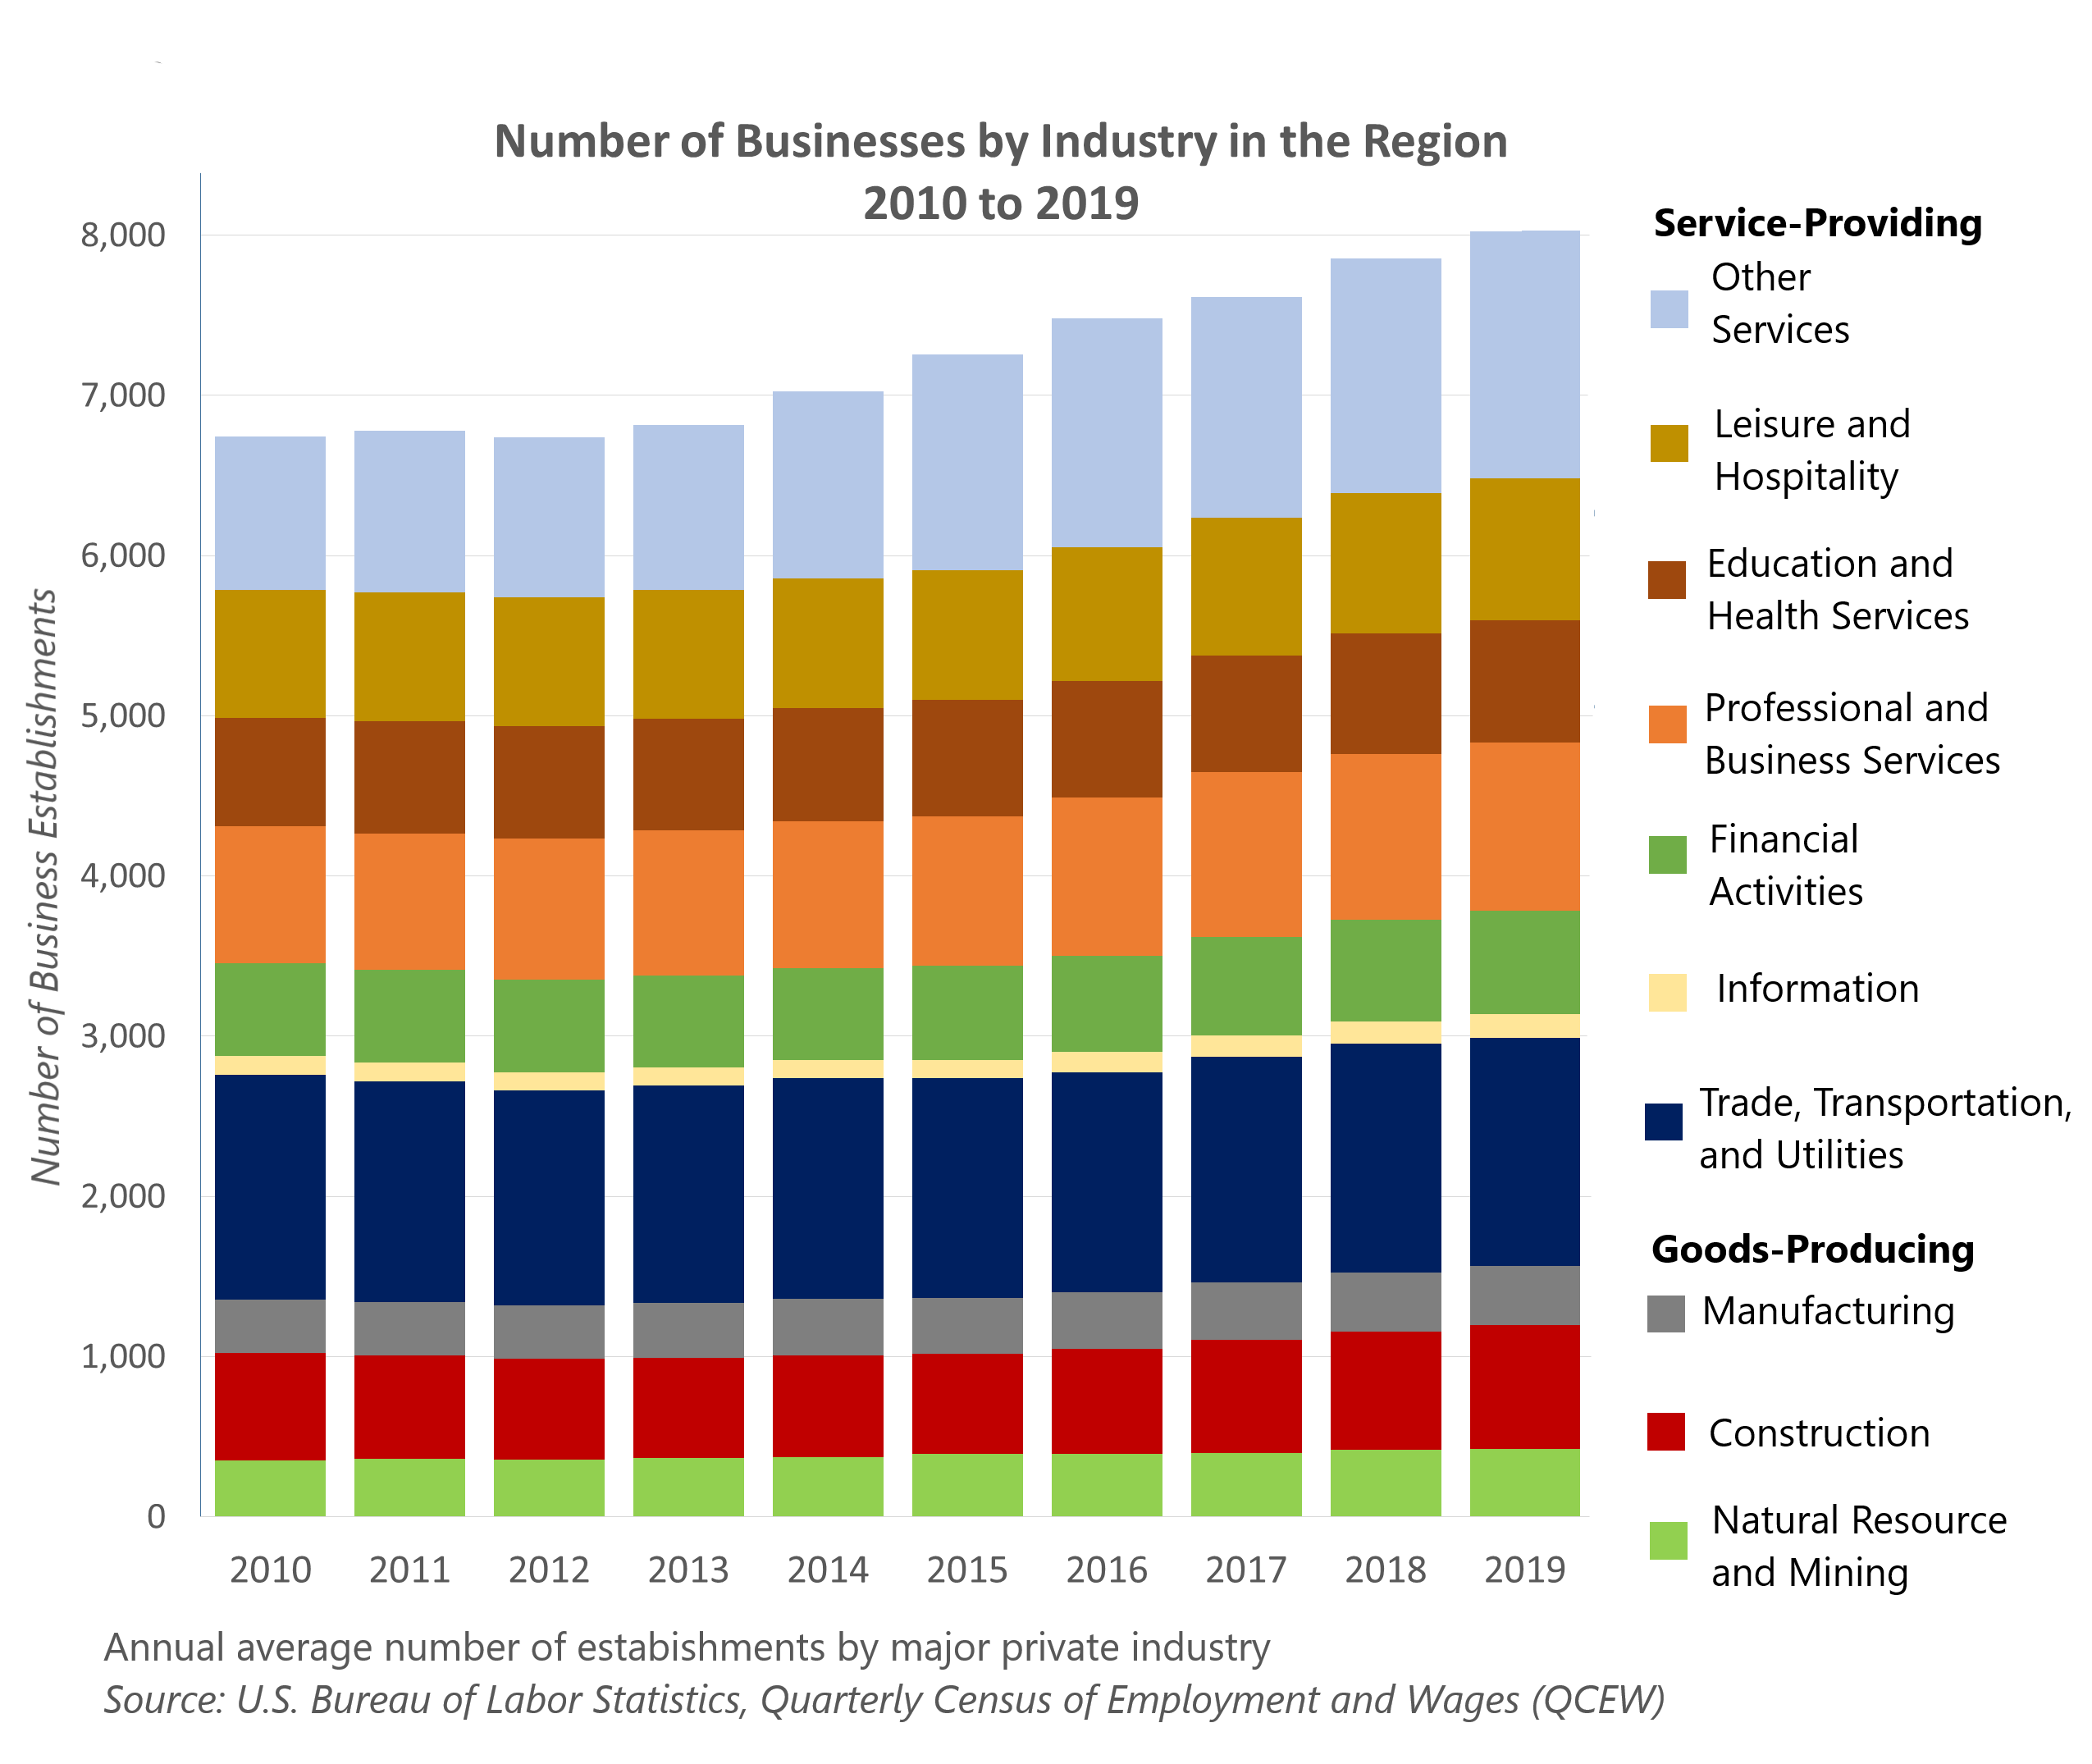 Number of Businesses by Industry in Region